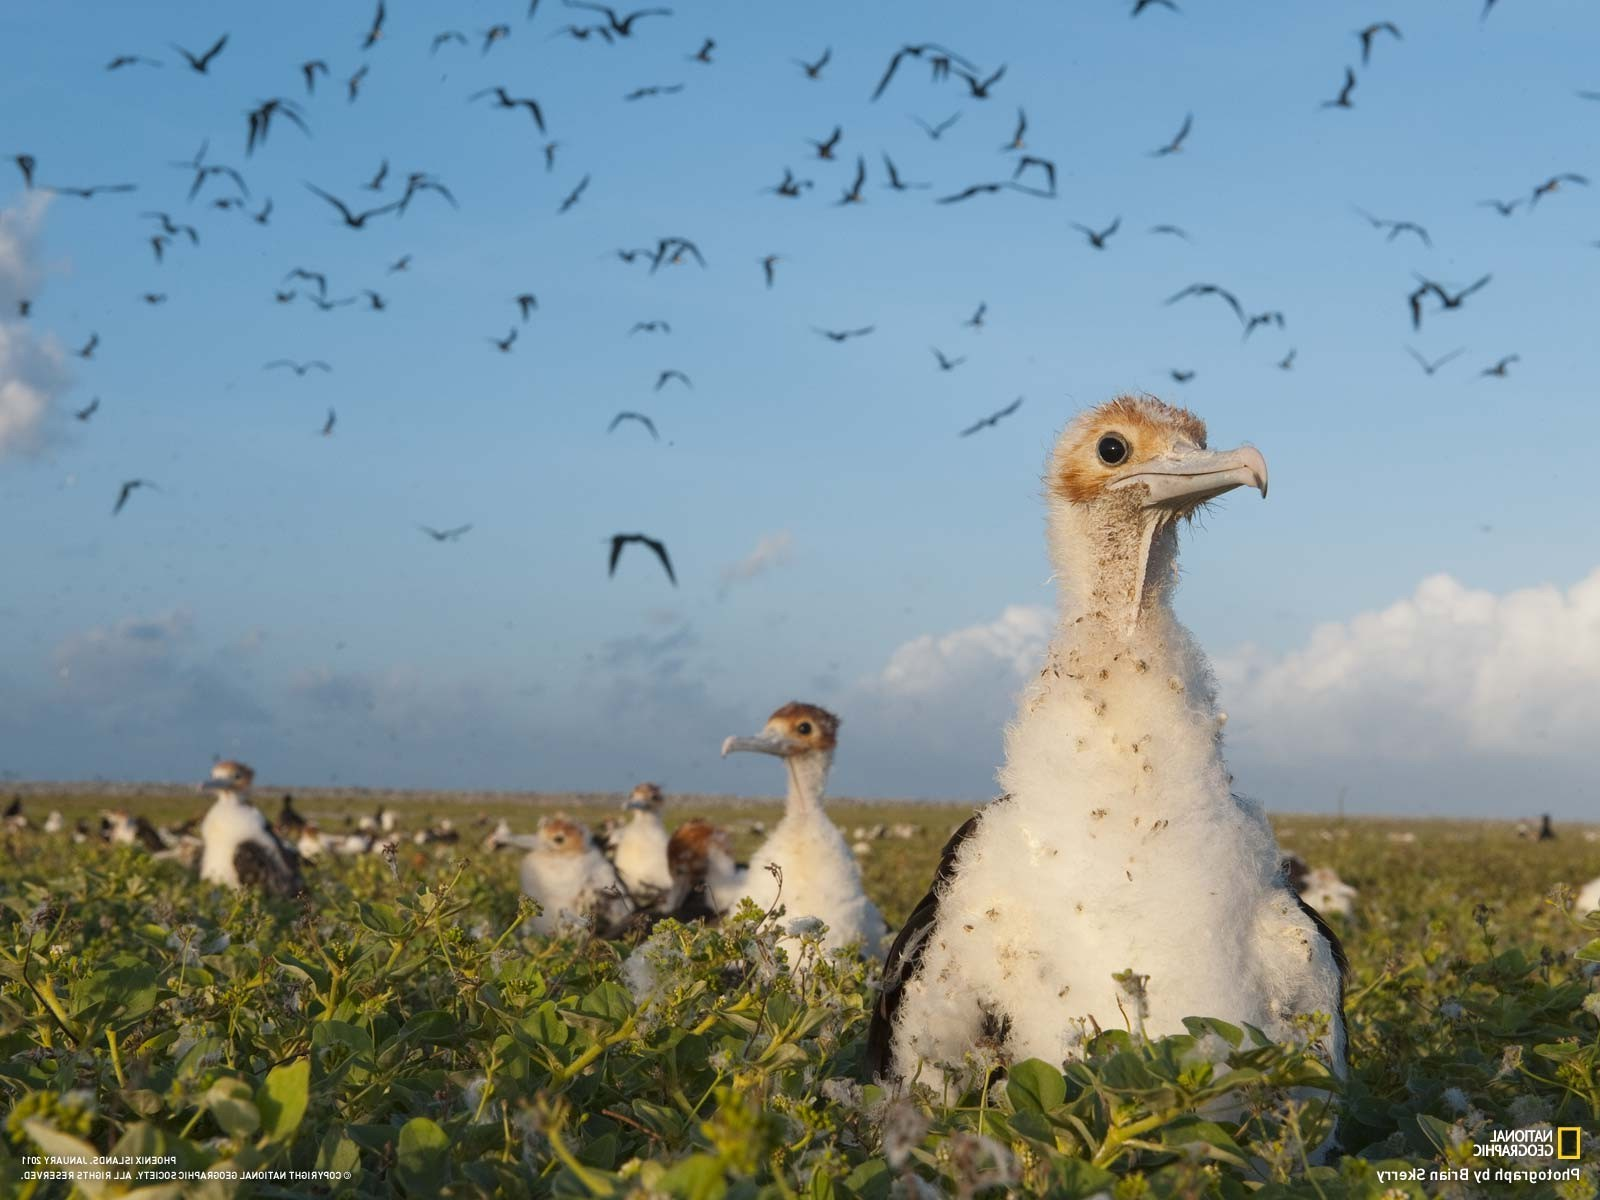 Discovery Channel Hd Wallpapers National Geographic Birds Wallpapers Hd Desktop And